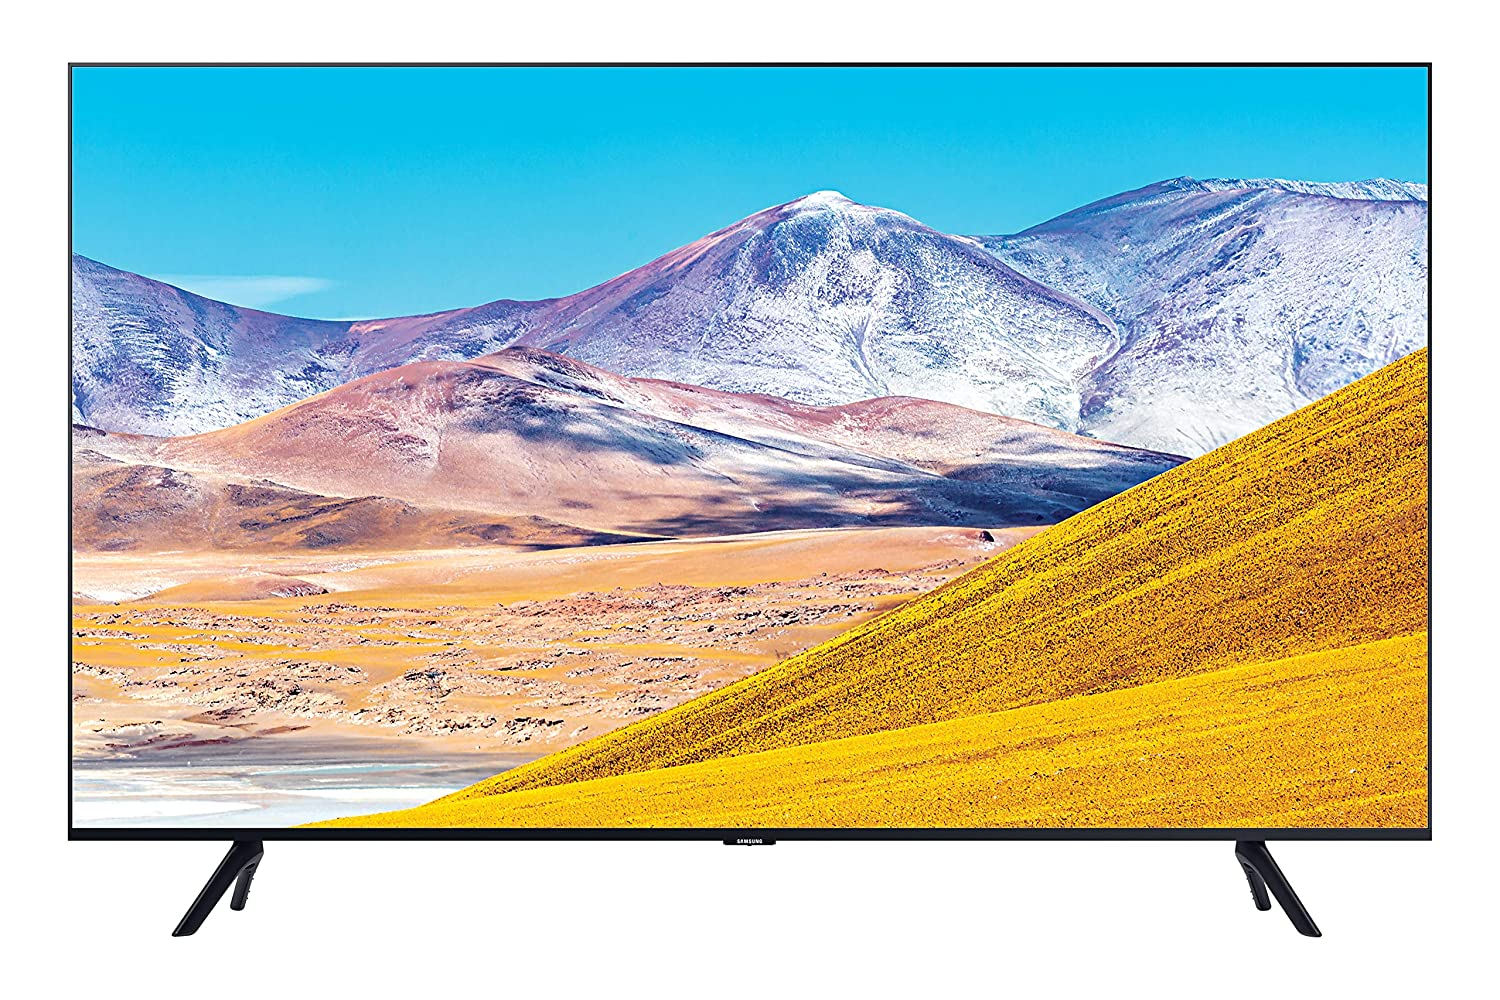 Samsung 163 cm  65 inches  4K Ultra HD Smart LED TV UA65TU8000KXXL  Black   2020 Model